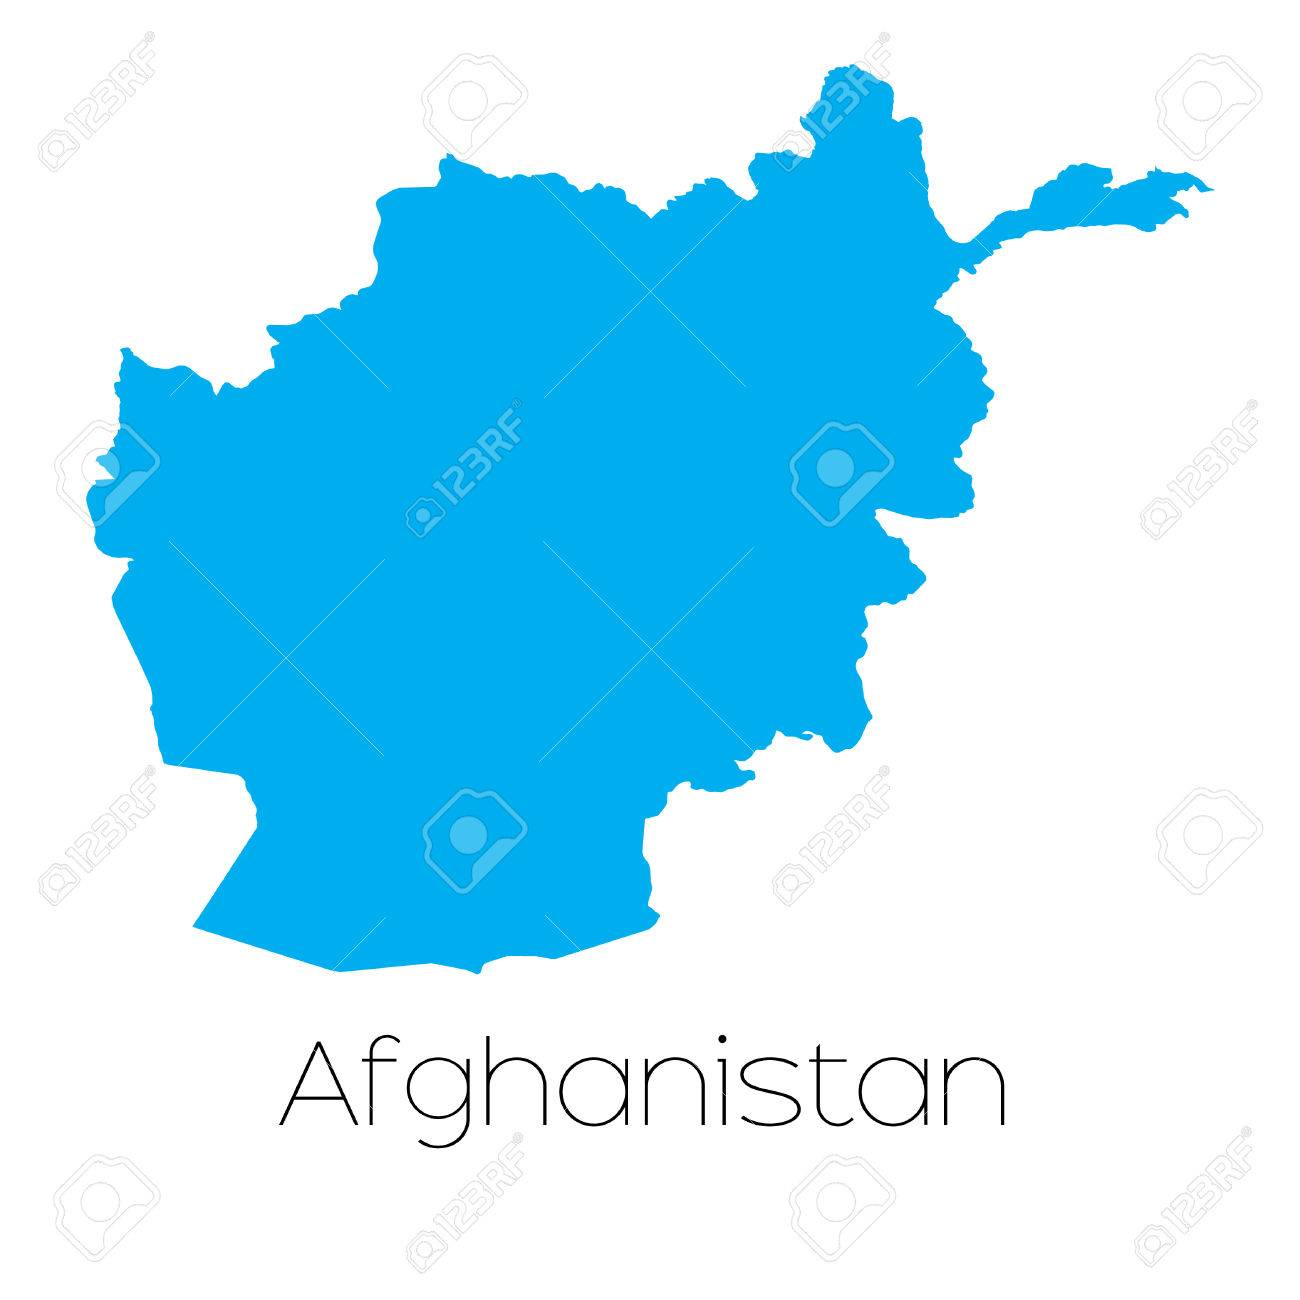 A Blue shape with name of the country of Afghanistan Stock Photo - 44820610